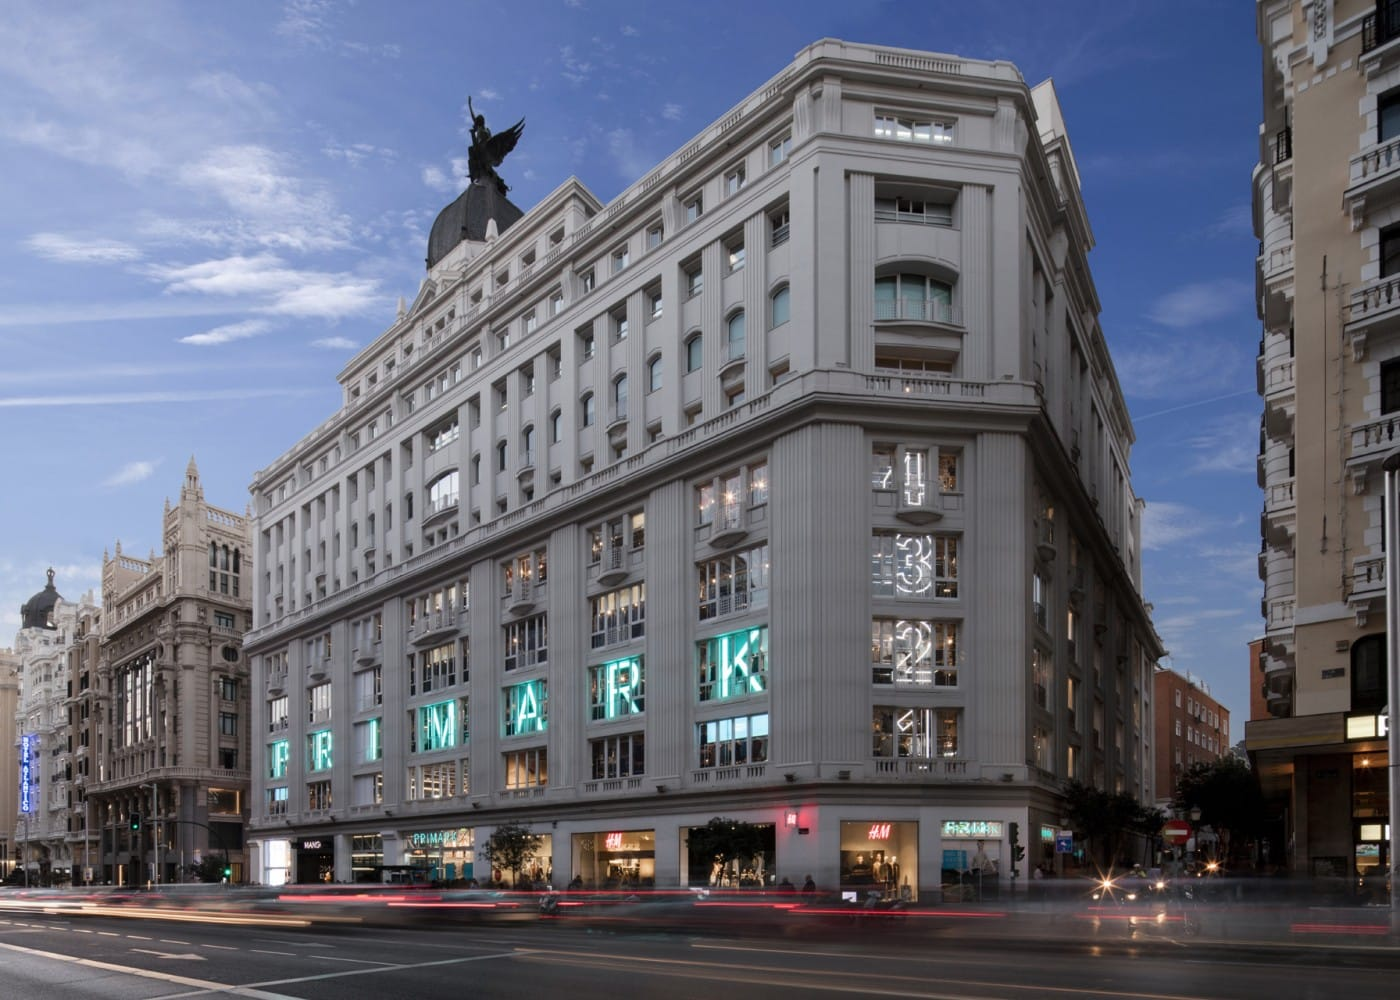 retail lighting design: Madrid Gran Via Primark exterior